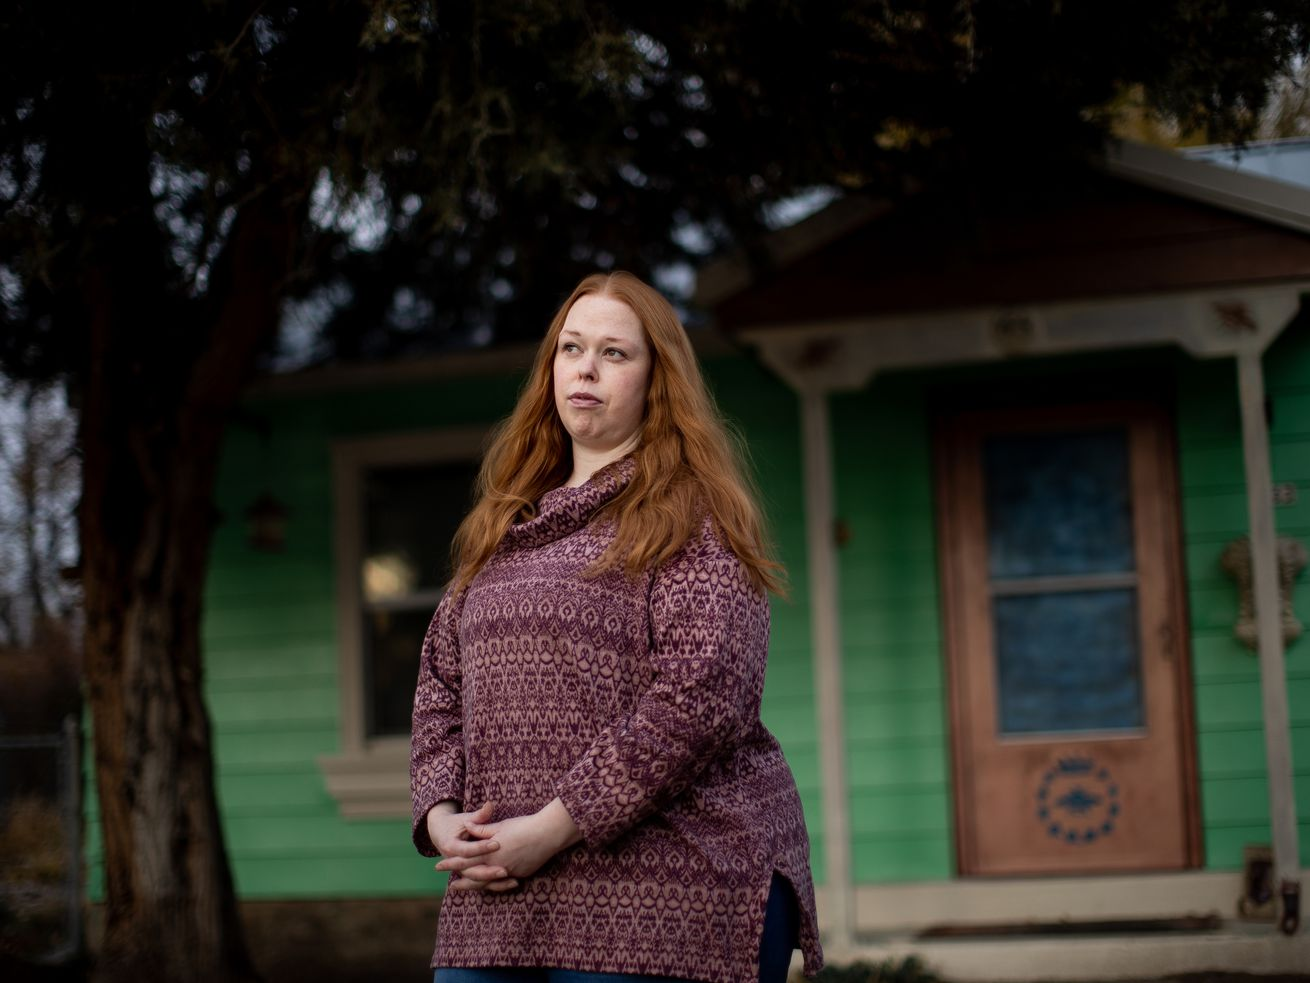 Katie Wood poses for a photograph outside of her home in Layton on Tuesday, Nov. 17, 2020. Wood's 70-year-old father, Tom Black, is an inmate at the Utah State Prison and has contracted COVID-19.